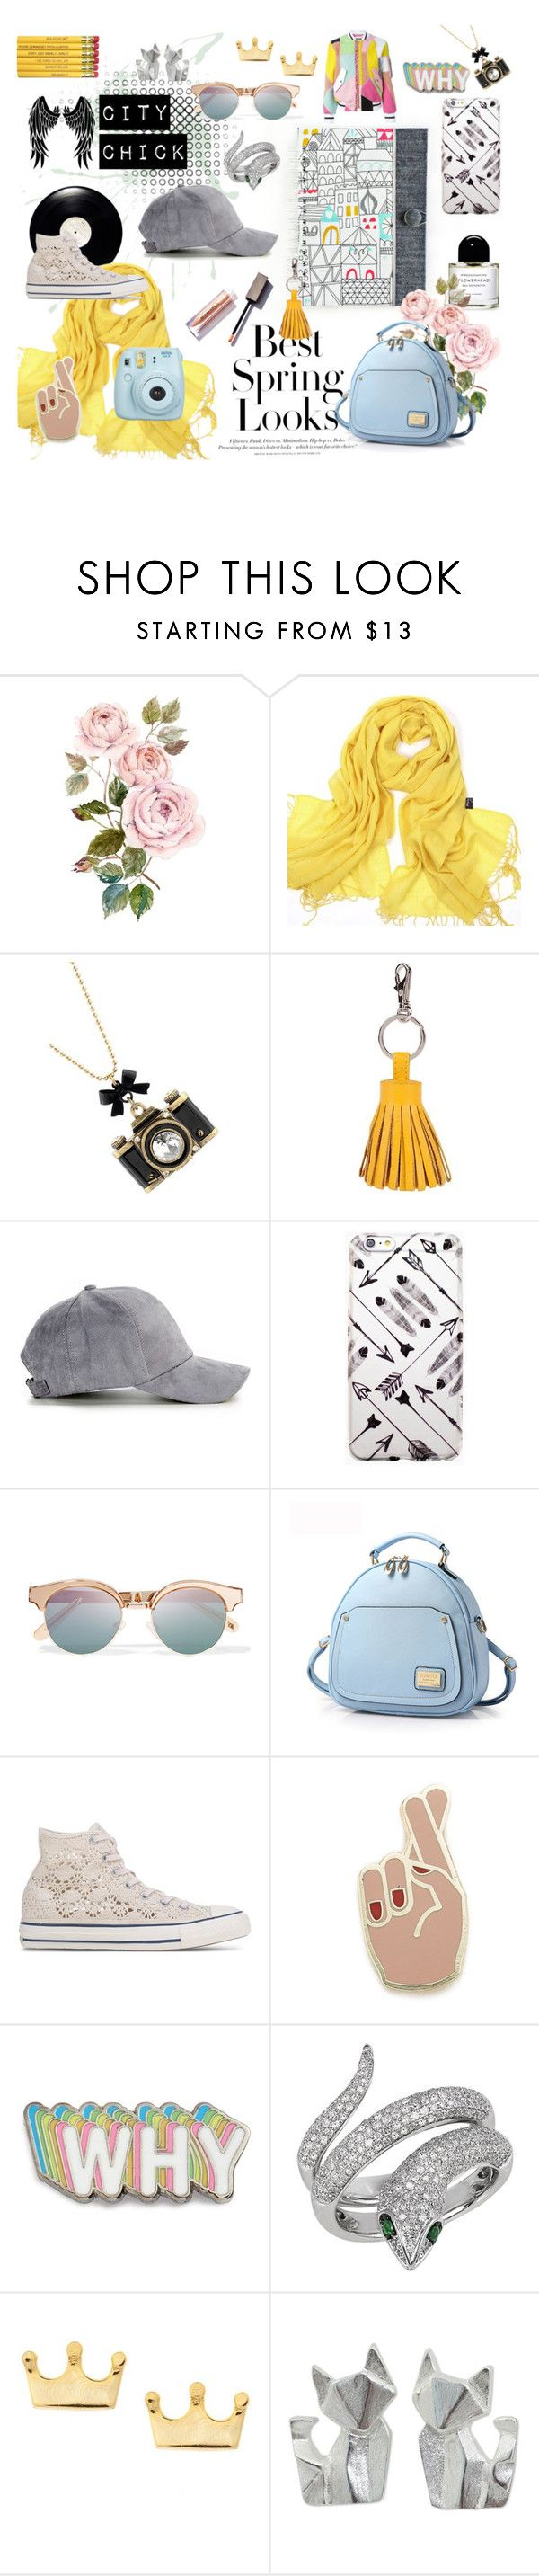 """""""City Chick"""" by iwona-estera on Polyvore featuring H&M, Betsey Johnson, ILI, Le Specs, Converse, Georgia Perry, Big Bud Press, Effy Jewelry, Mminimal and NOVICA"""